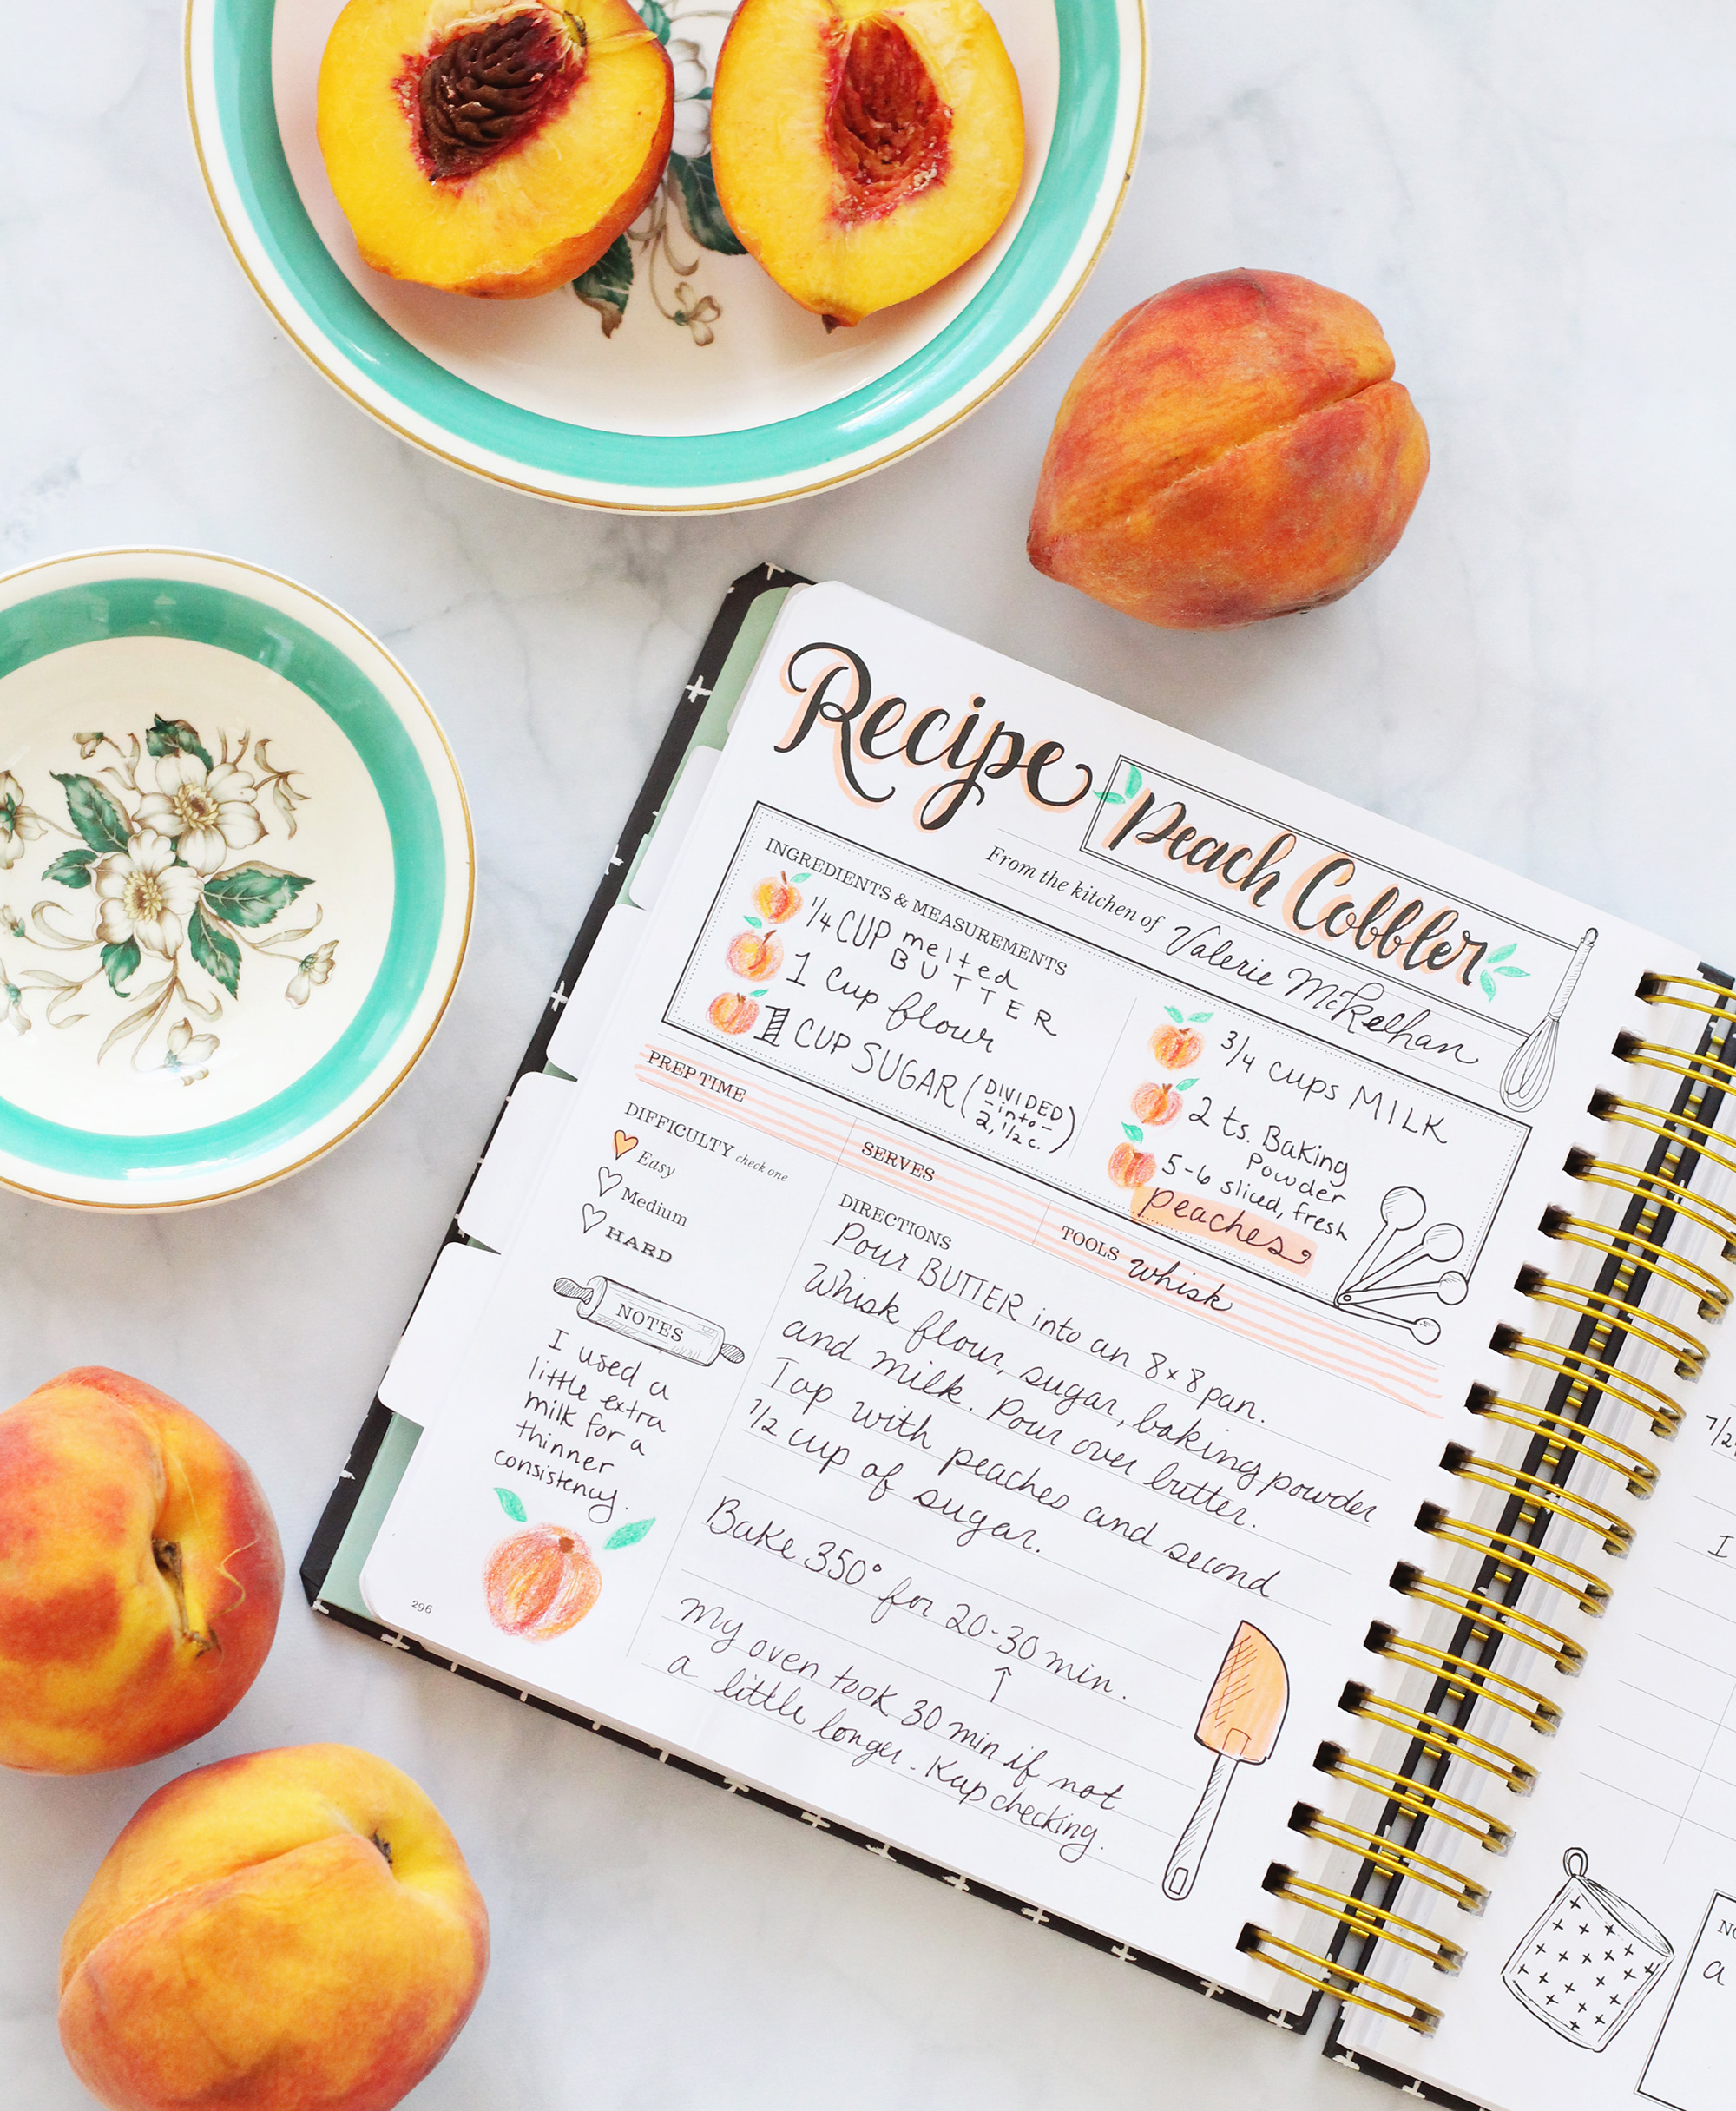 Peach Cobbler recipe recorded in the Lily & Val Keepsake Kitchen Diary. This one-of-a-kind cookbook is a unique way to record special recipes and the memories that go along with them